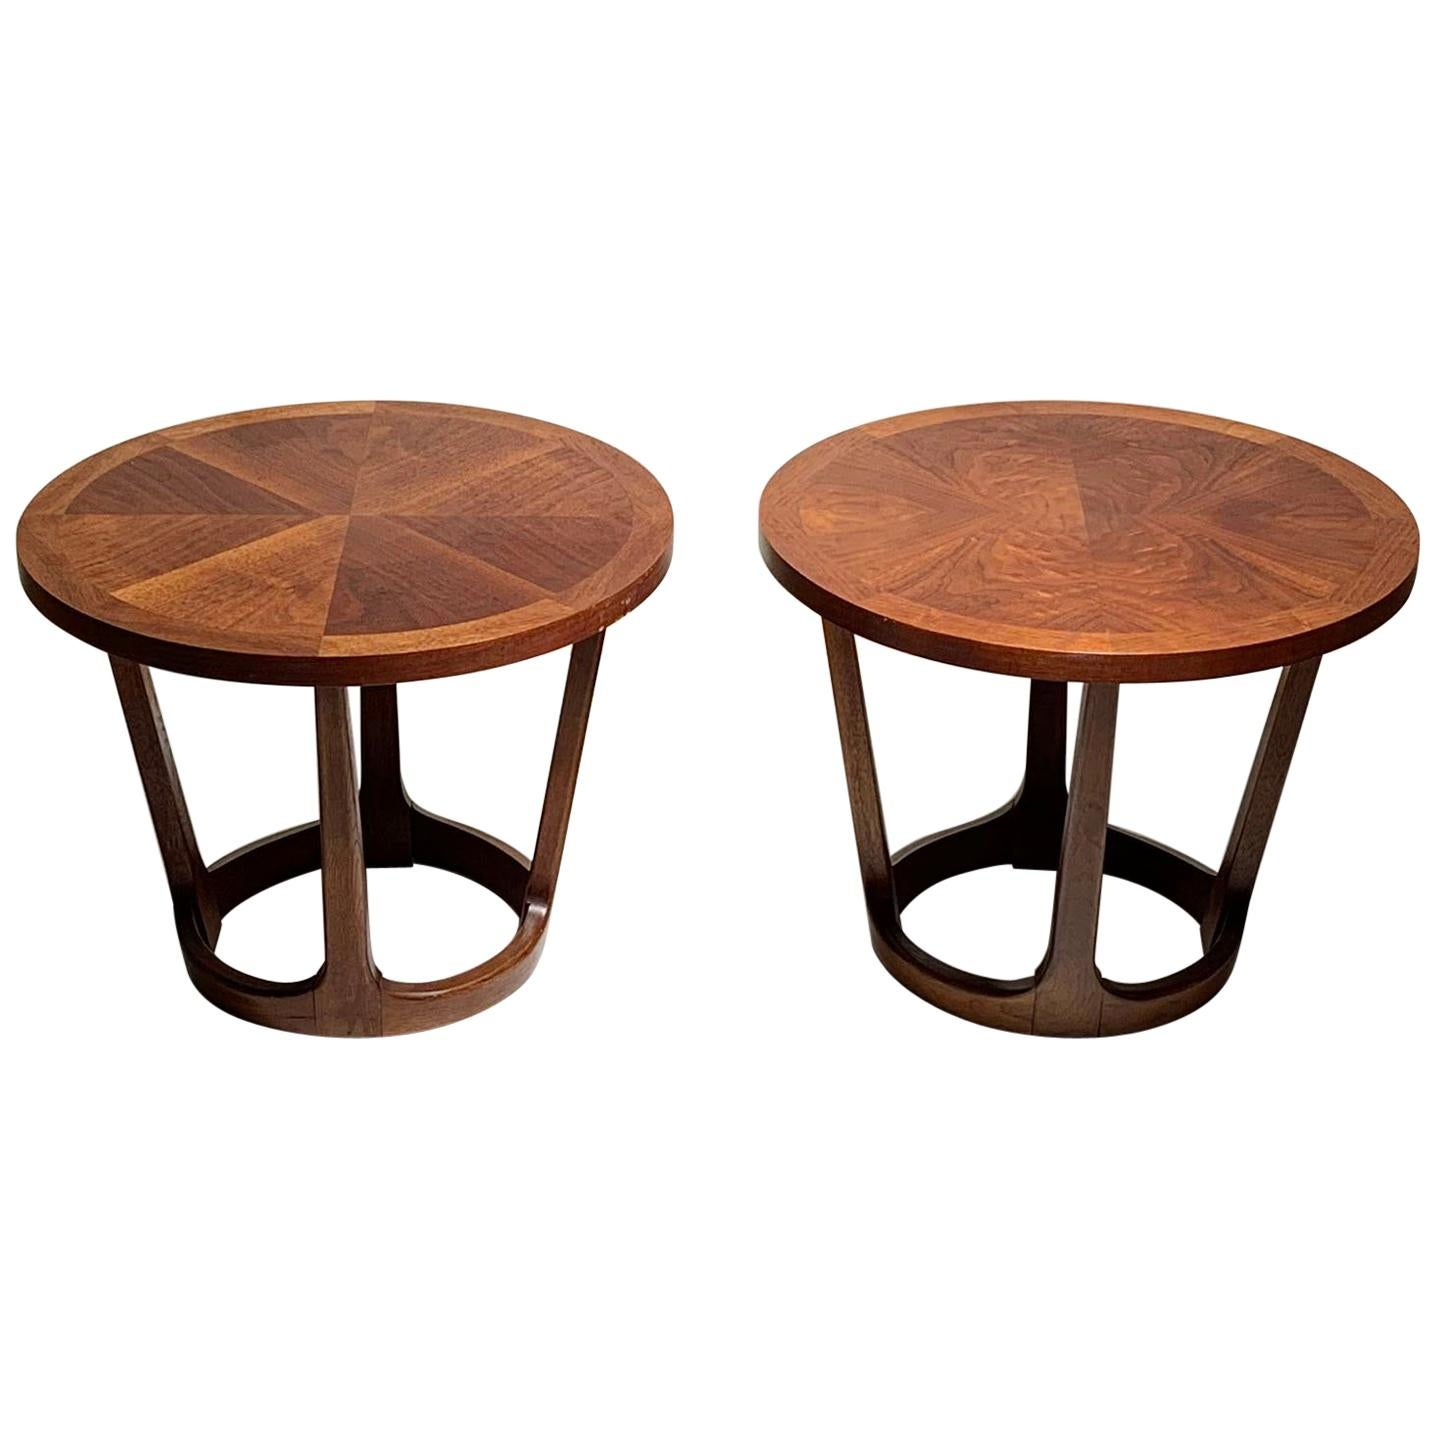 Merveilleux Pair Of Vintage Lane Round Drum End Table 997 22 / Rhythm Collection For  Sale